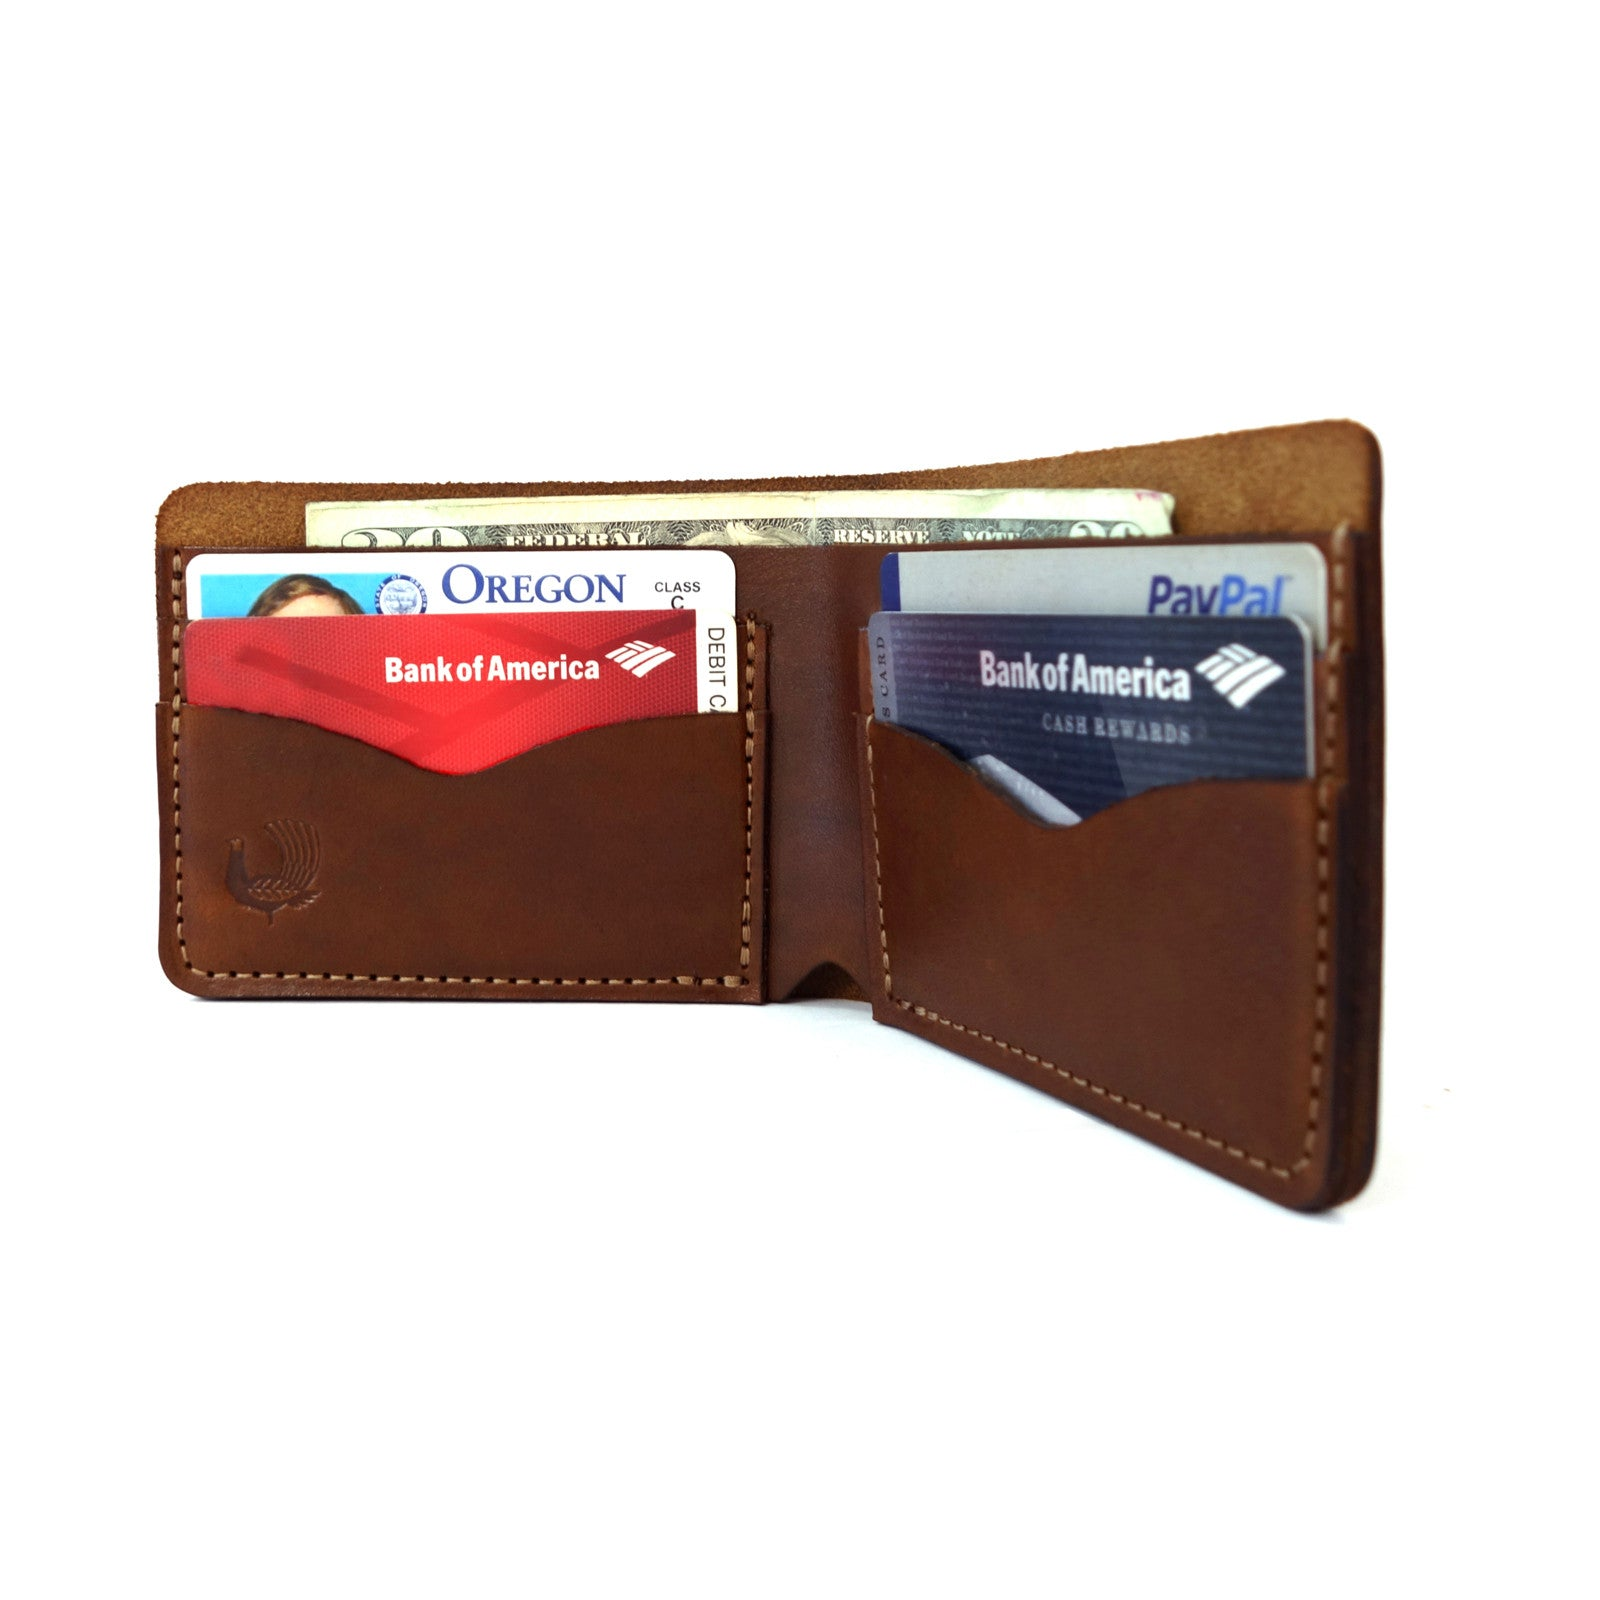 Built to last you a lifetime, the Donovan Wallet is a classic bi-fold leather wallet with a sophisticated look and feel.  3/4oz & 2/3oz Herman Oak Vegetable-Tanned Leather, 4 Card-Slots, 1 Length Long Pocket for Cash. Best leather wallet. Slim wallet. bifold.